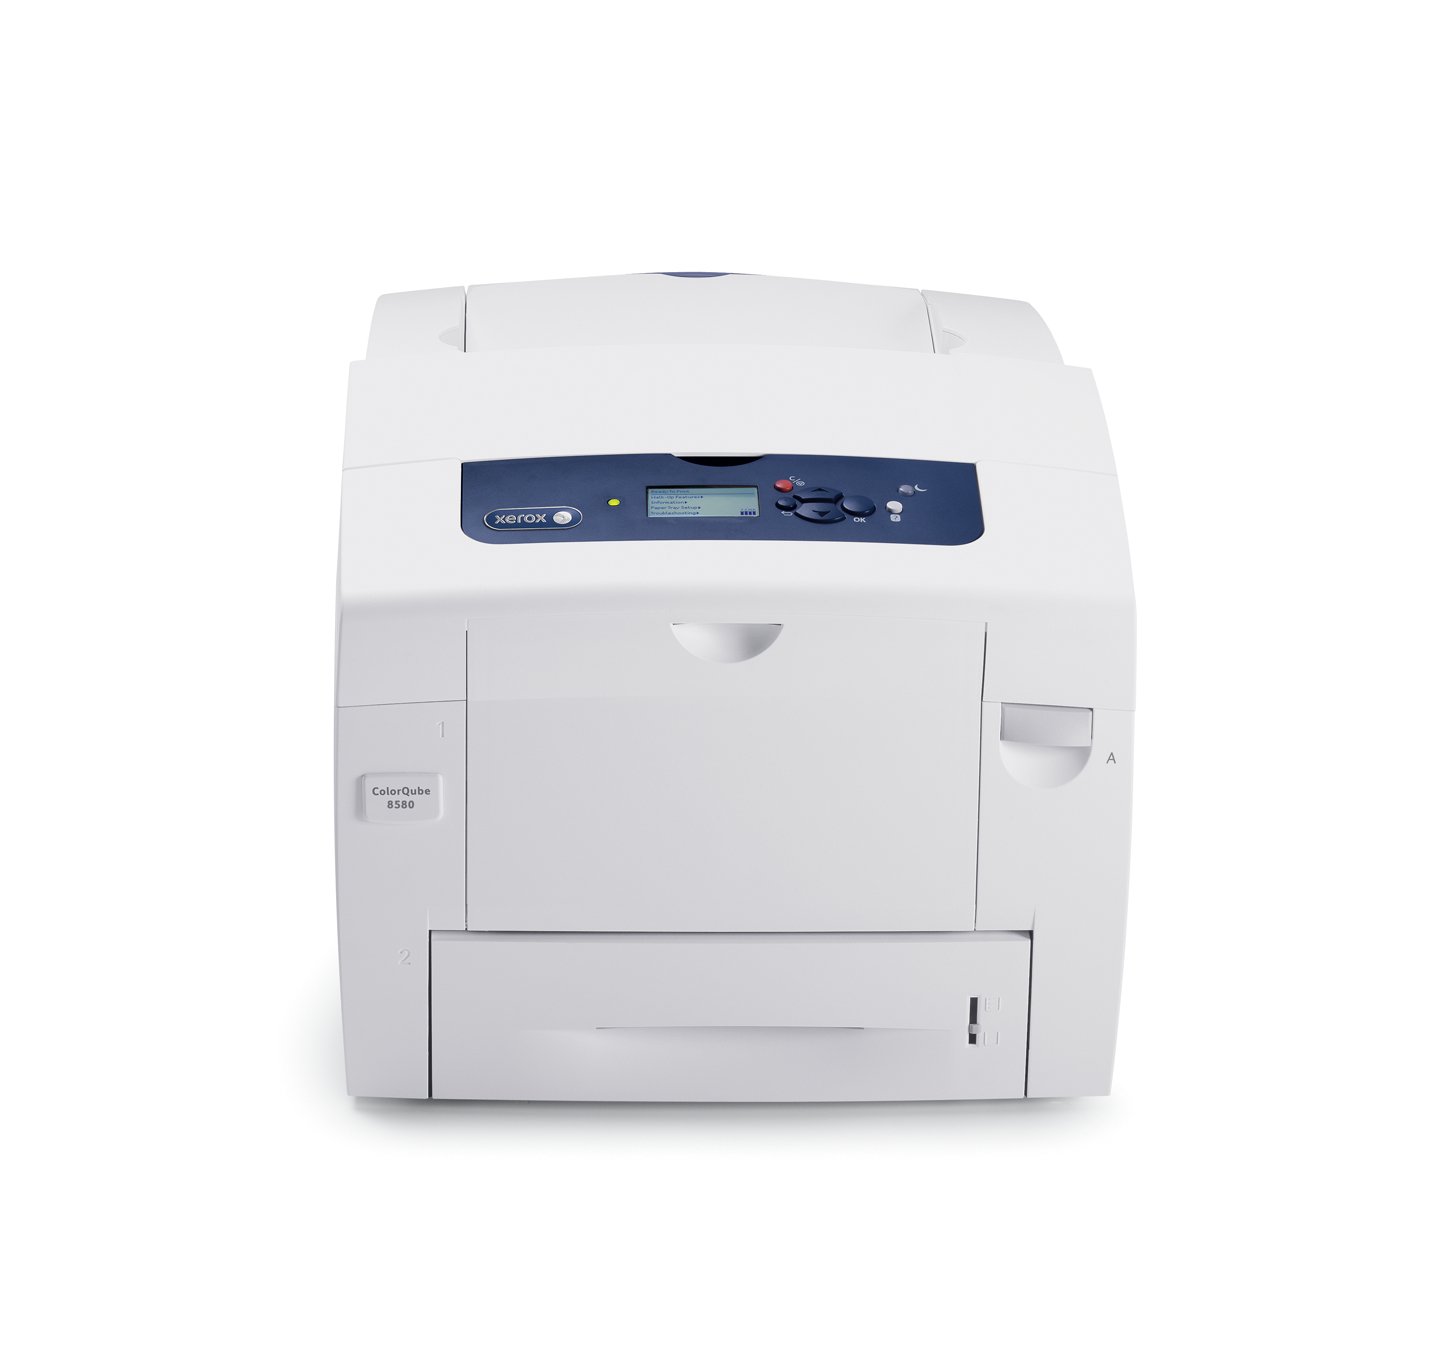 Xerox ColorQube 8580_AN - Printer - Colour - Solid Ink - A4/Legal - Up To 51 Ppm (mono) / Up To 51 Ppm (colour) - Capacity: 625 Sheets - USB 2.0, Gigabit LAN 8580_AN - Refurbished